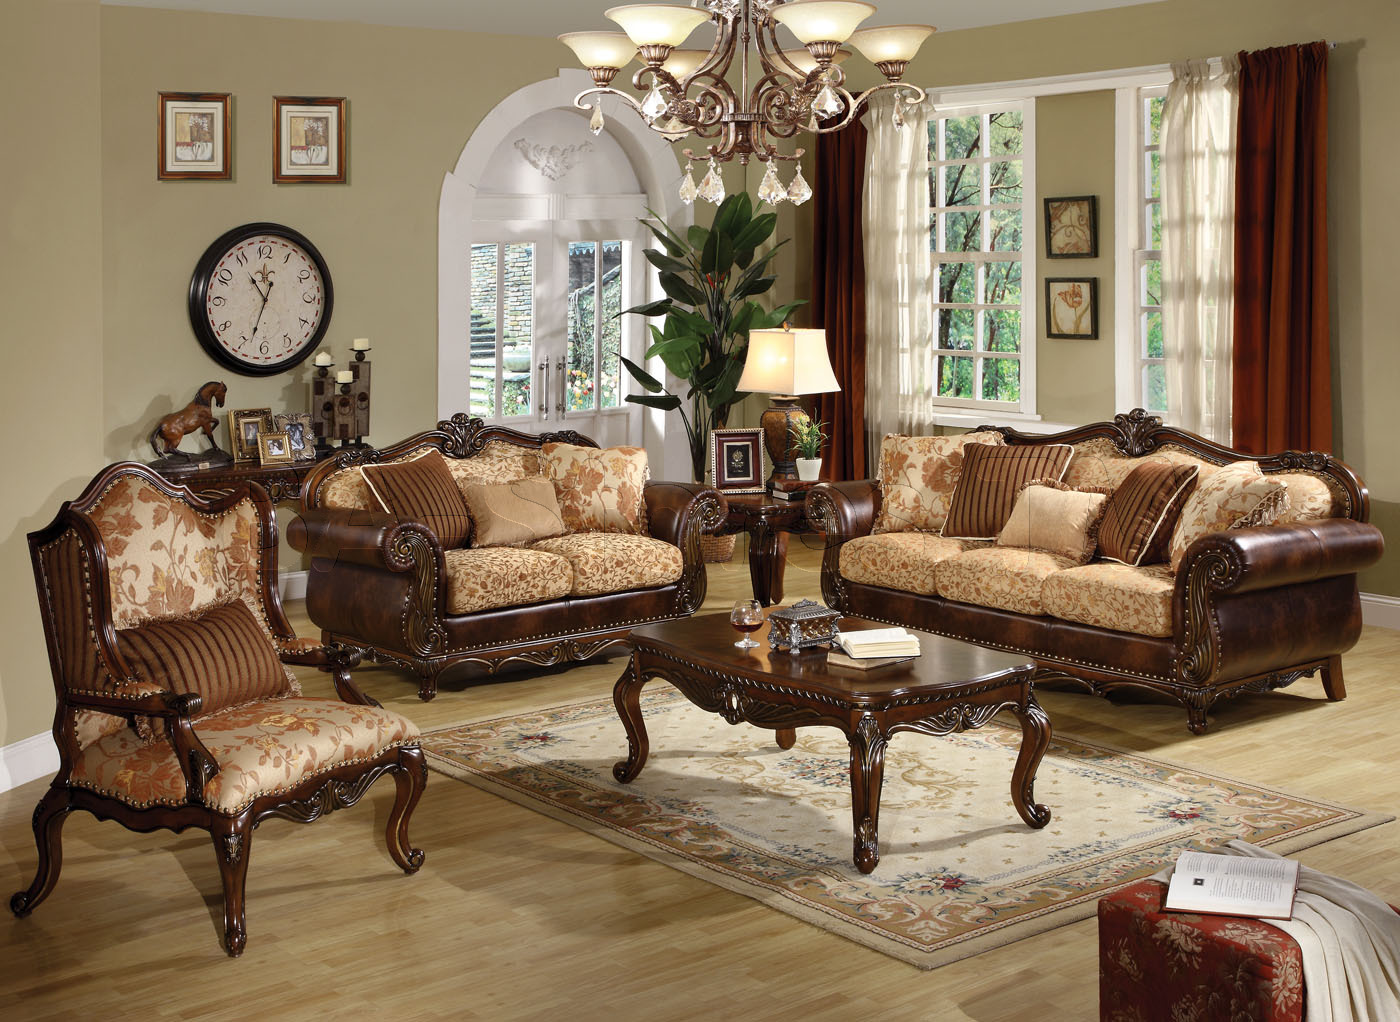 Best Furniture Ideas for Home Traditional Classic Furniture Styles